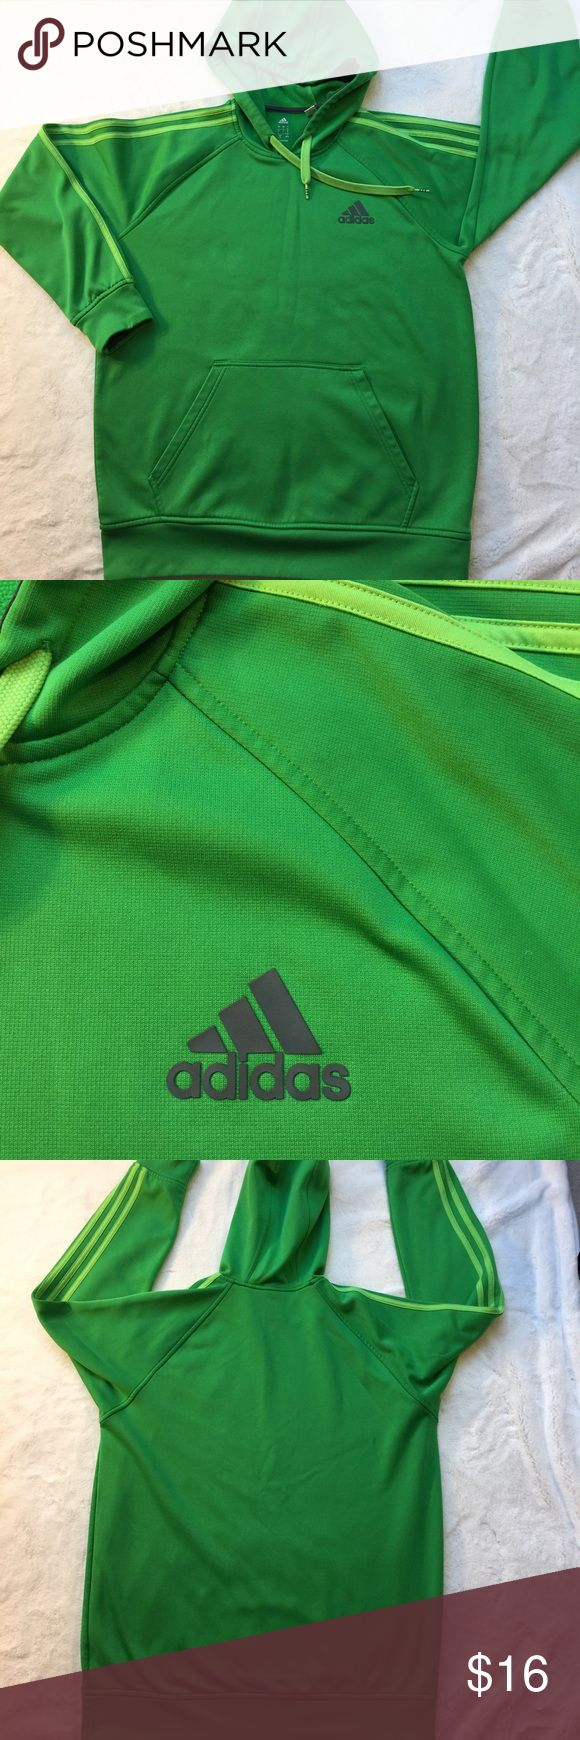 Men's ADIDAS Pullover Hoodie EUC size L Green Adidas hoodie in excellent pre worn condition.  Size Large. Adidas Shirts Sweatshirts & Hoodies